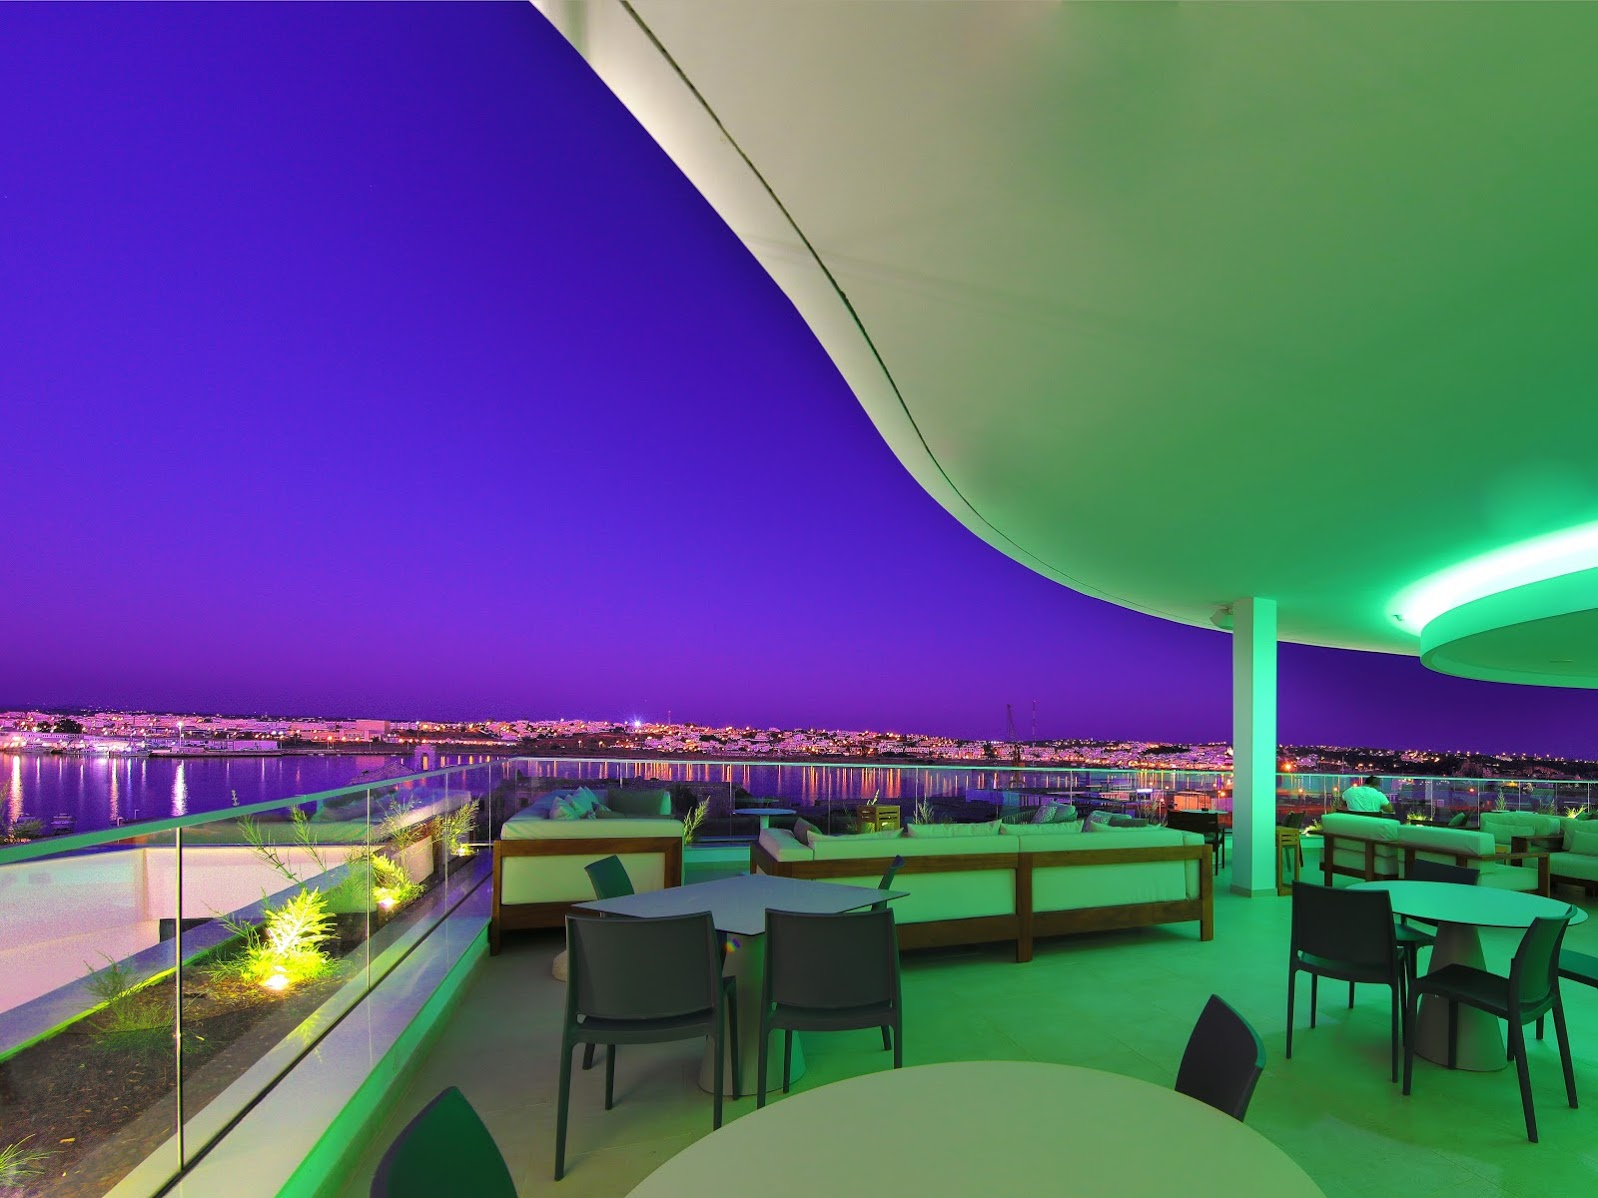 438/Photos-Marina/Events/Rooftop_AradeBar_night-view.jpg